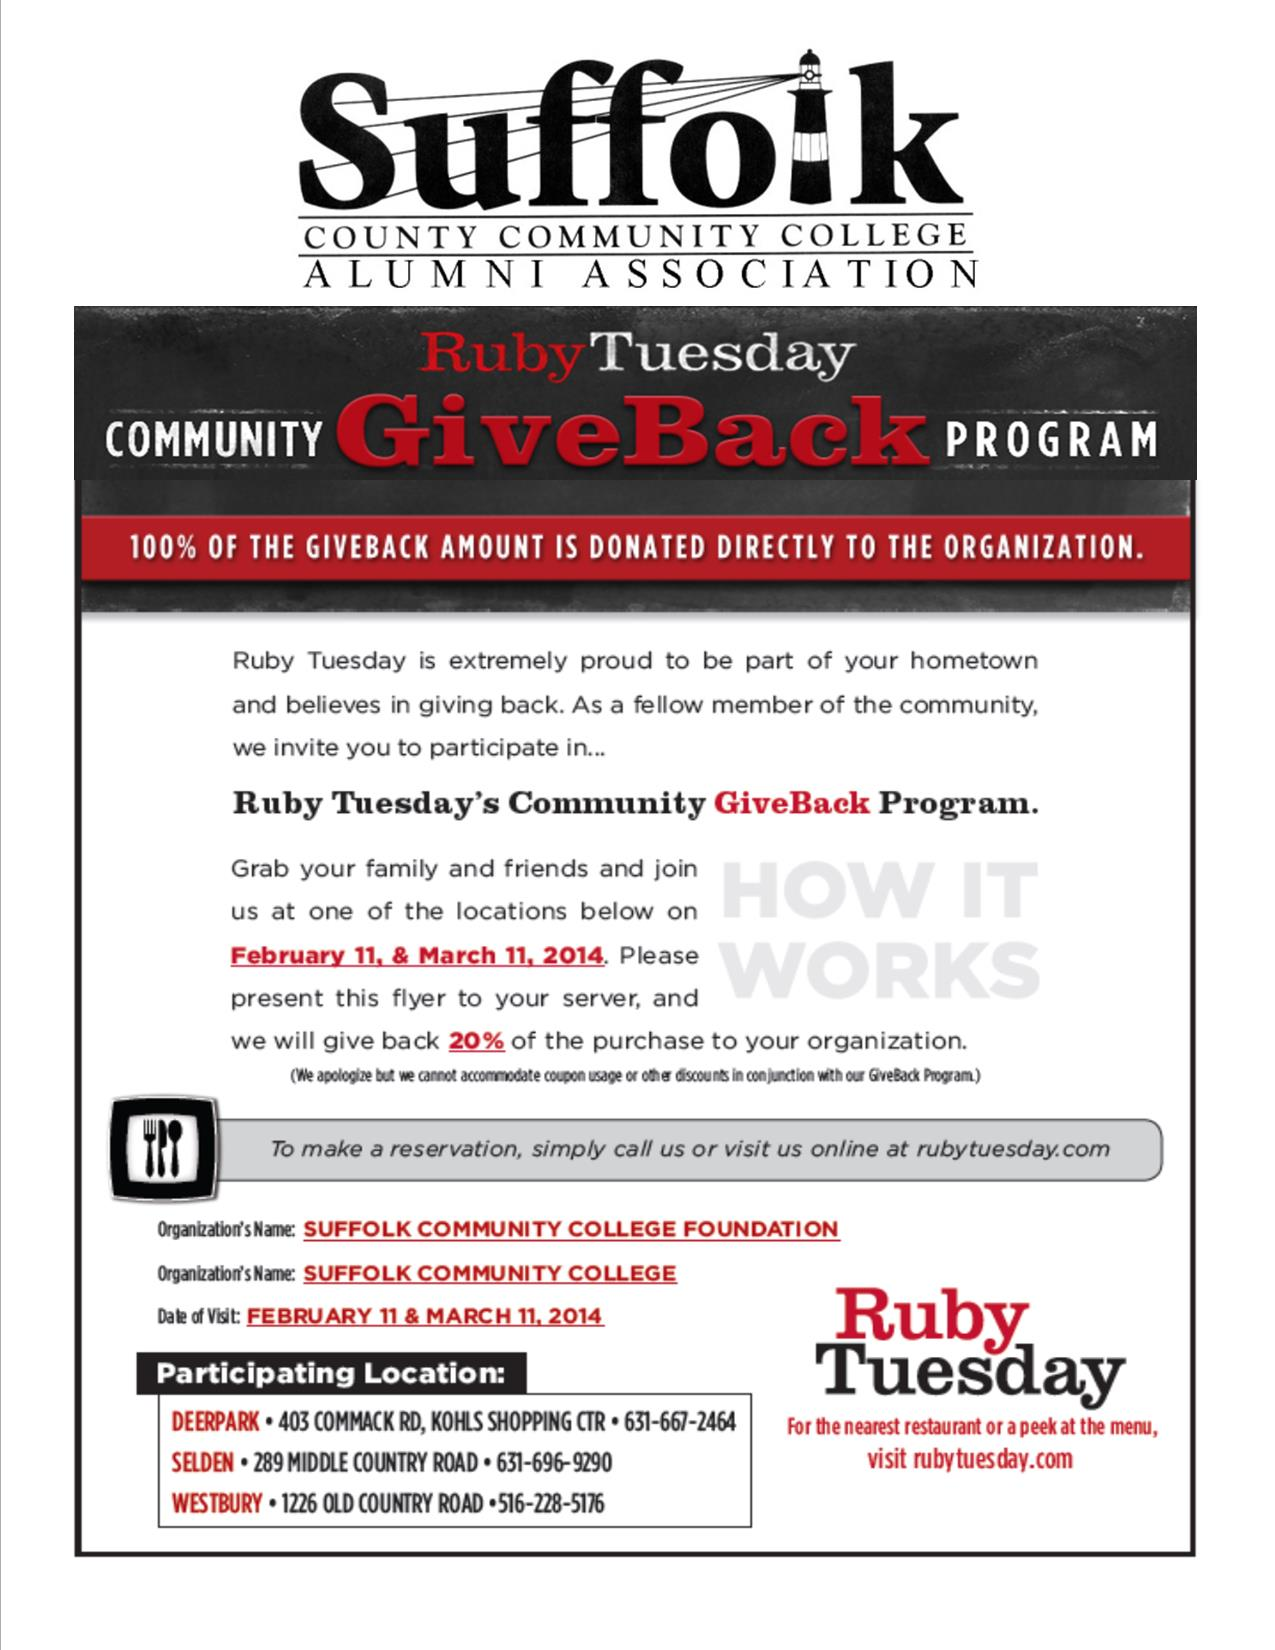 Hunger For Knowledge Support Suffolk County Community